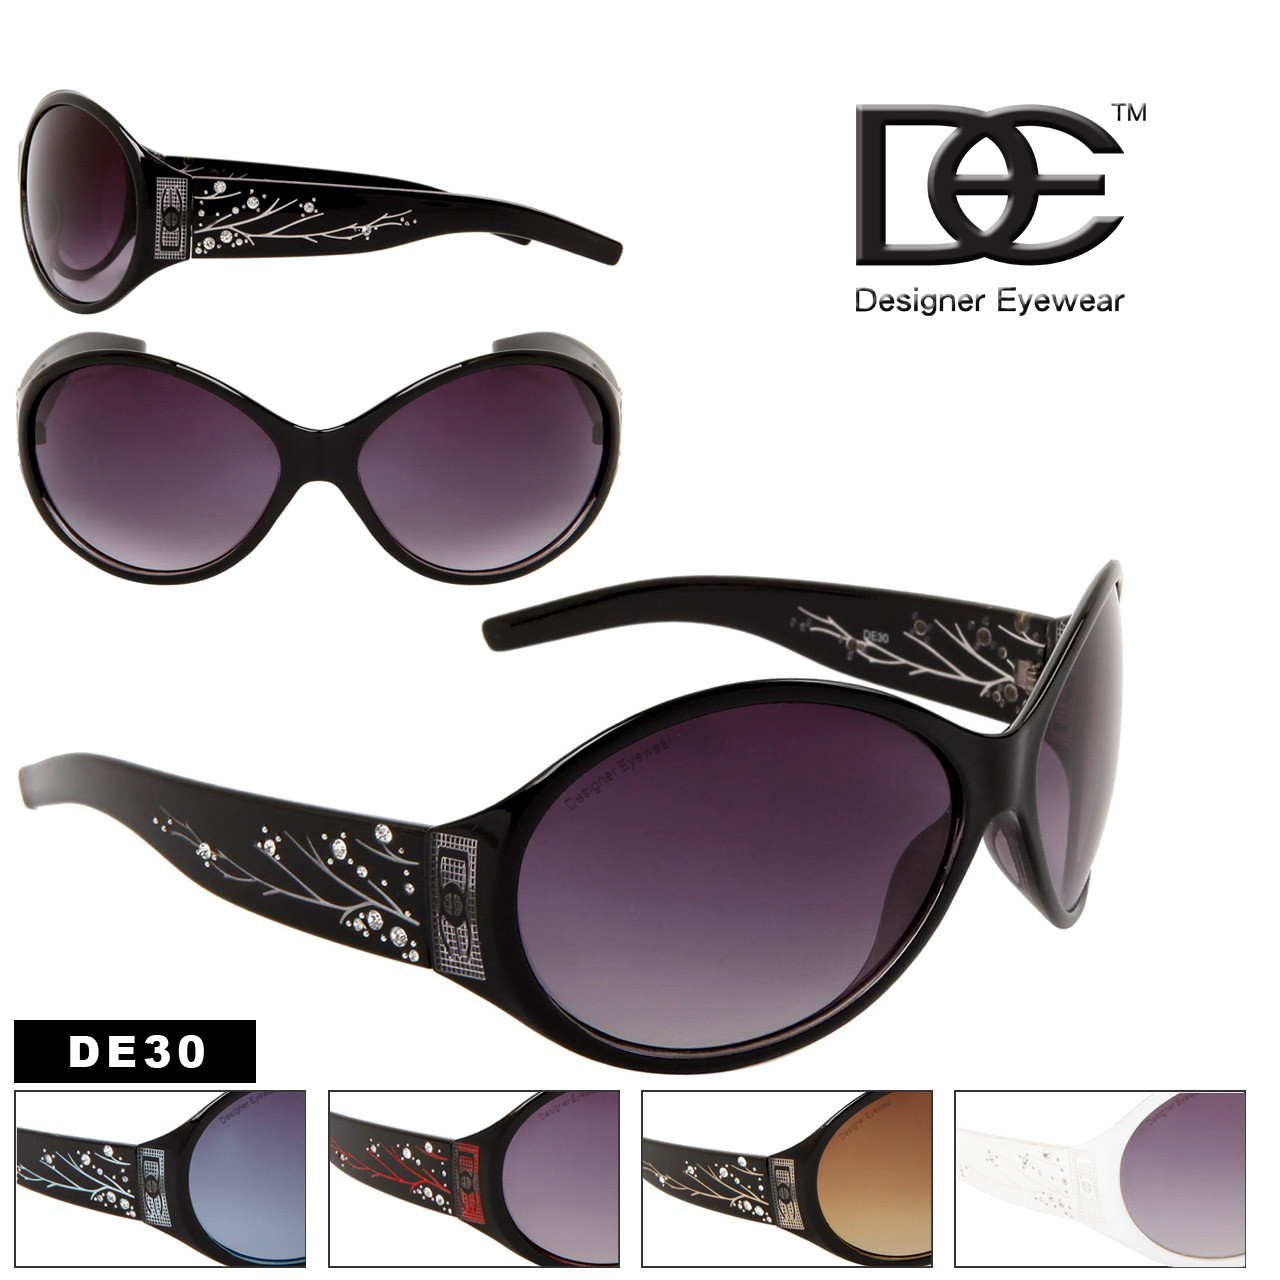 Fashion Sunglasses DE30